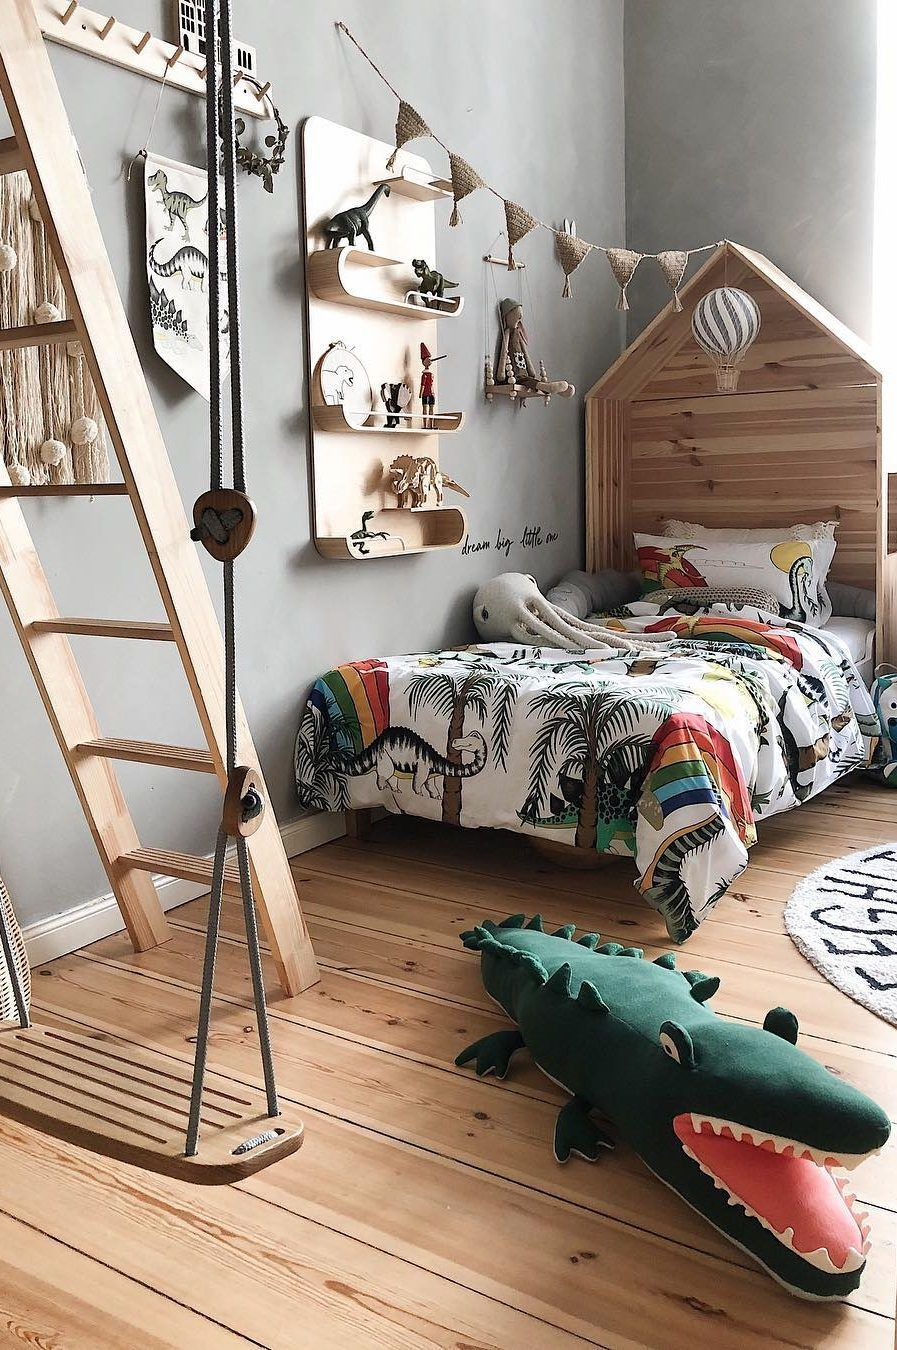 45 Beautiful And Modern Bedroom Decorating Ideas For This Year Page 37 Of 45 Evelyn S World My Dreams My Colors And My Life Boy Room Themes Toddler Boy Room Themes Toddler Rooms Childrens room decorating ideas